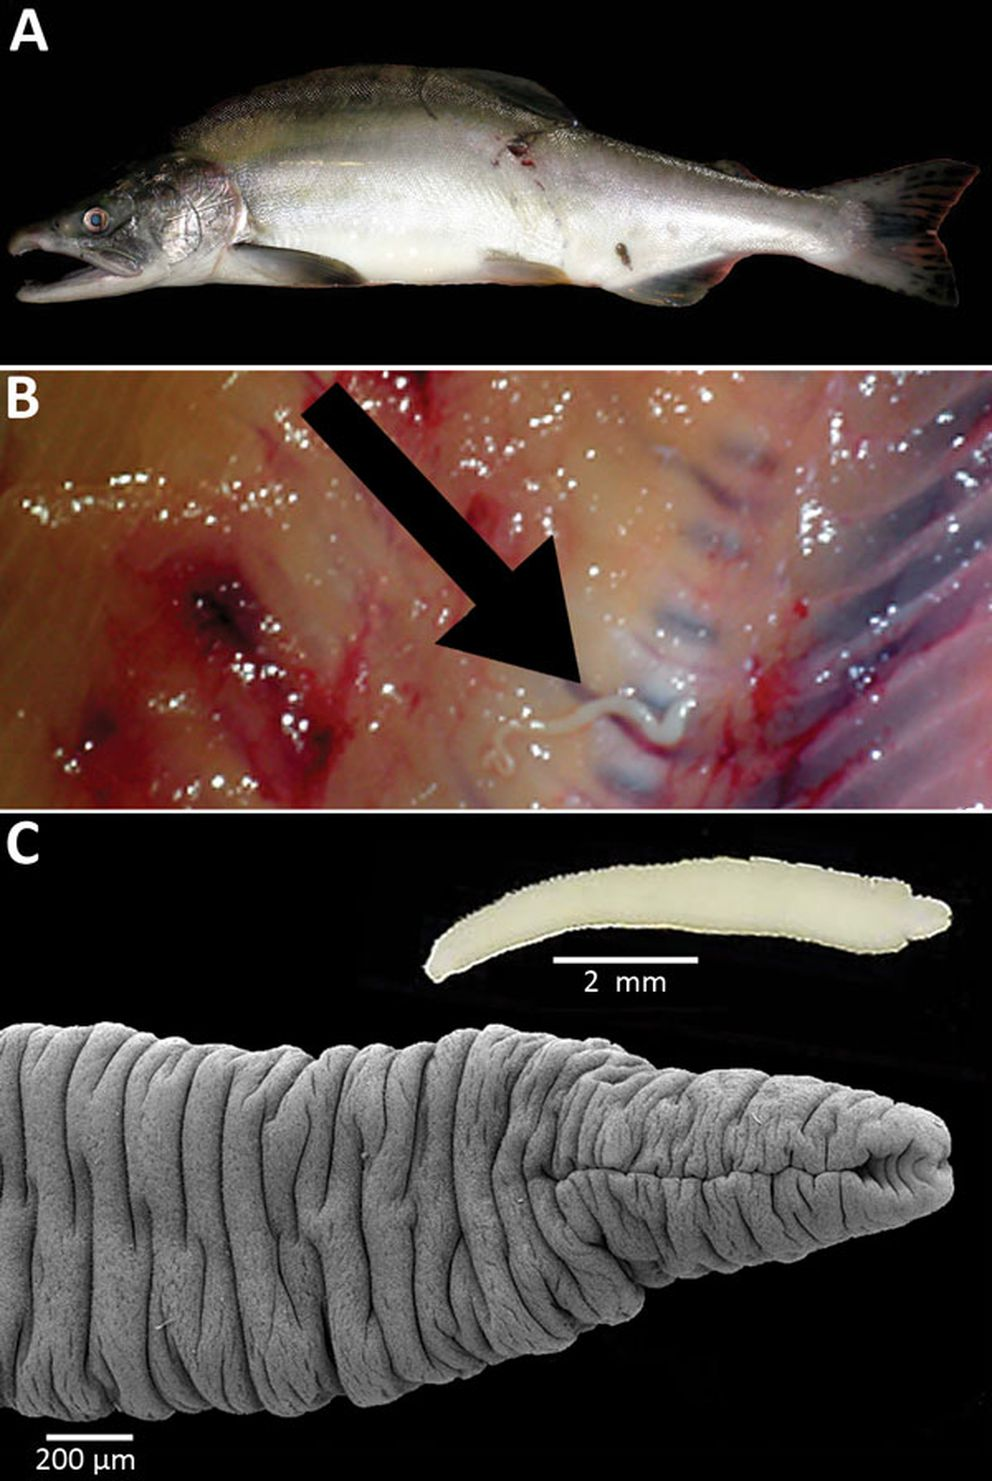 Scientists say in the journal Emerging Infectious Diseases that a pink salmon, caught in July 2013 in Resurrection Creek near Hope, contained this Japanese broad tapeworm larva. (Emerging Infectious Diseases)